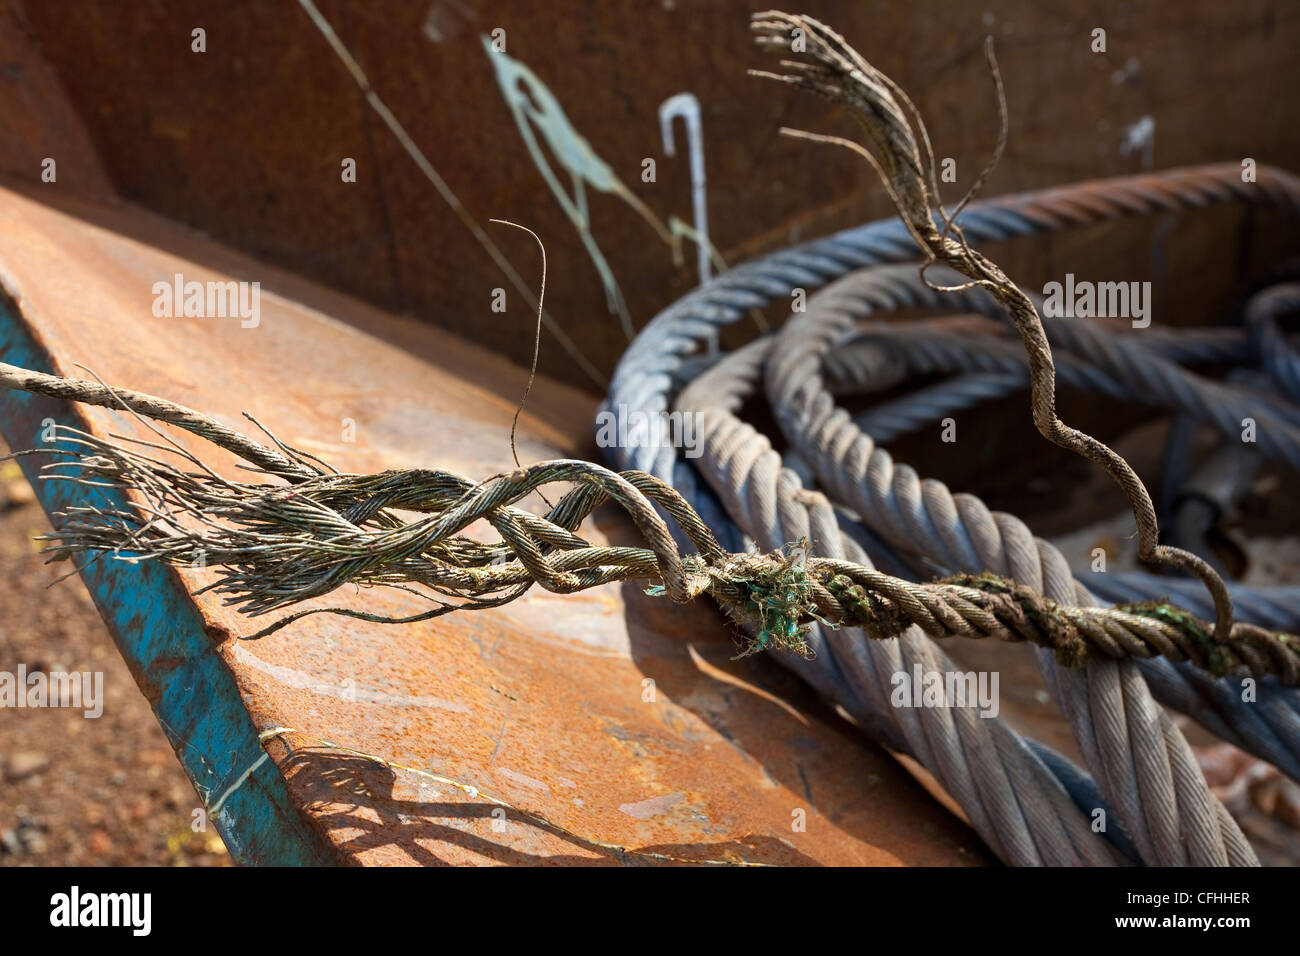 Broken Electric Wire Cable : Close up of a corroded or broken wire rope left in waste